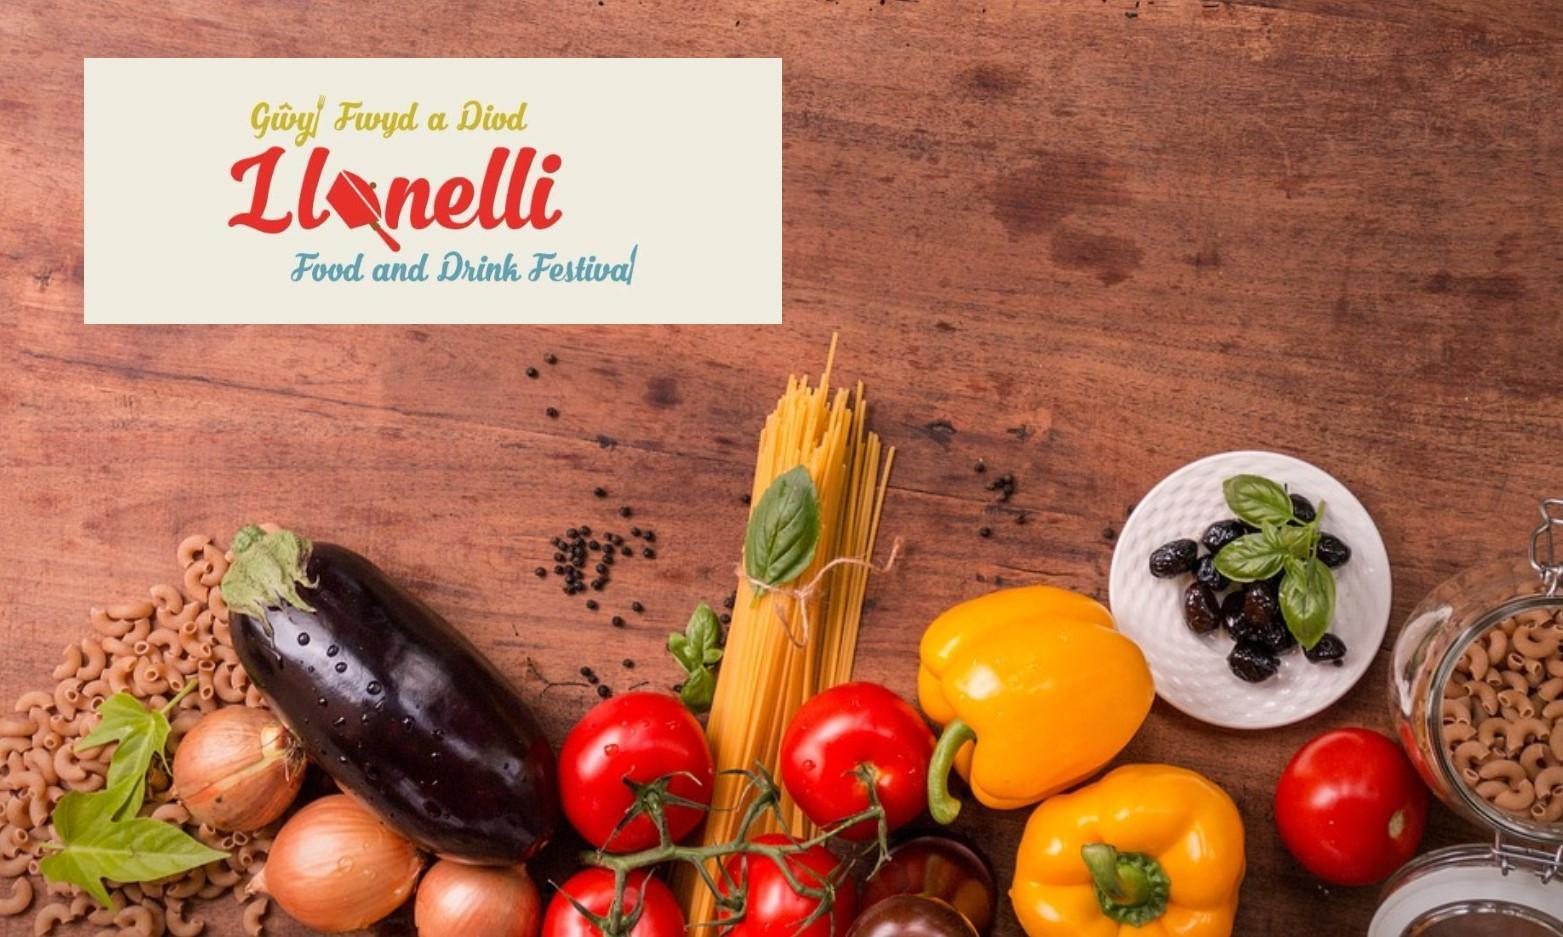 Llanelli Food and Drink Festival